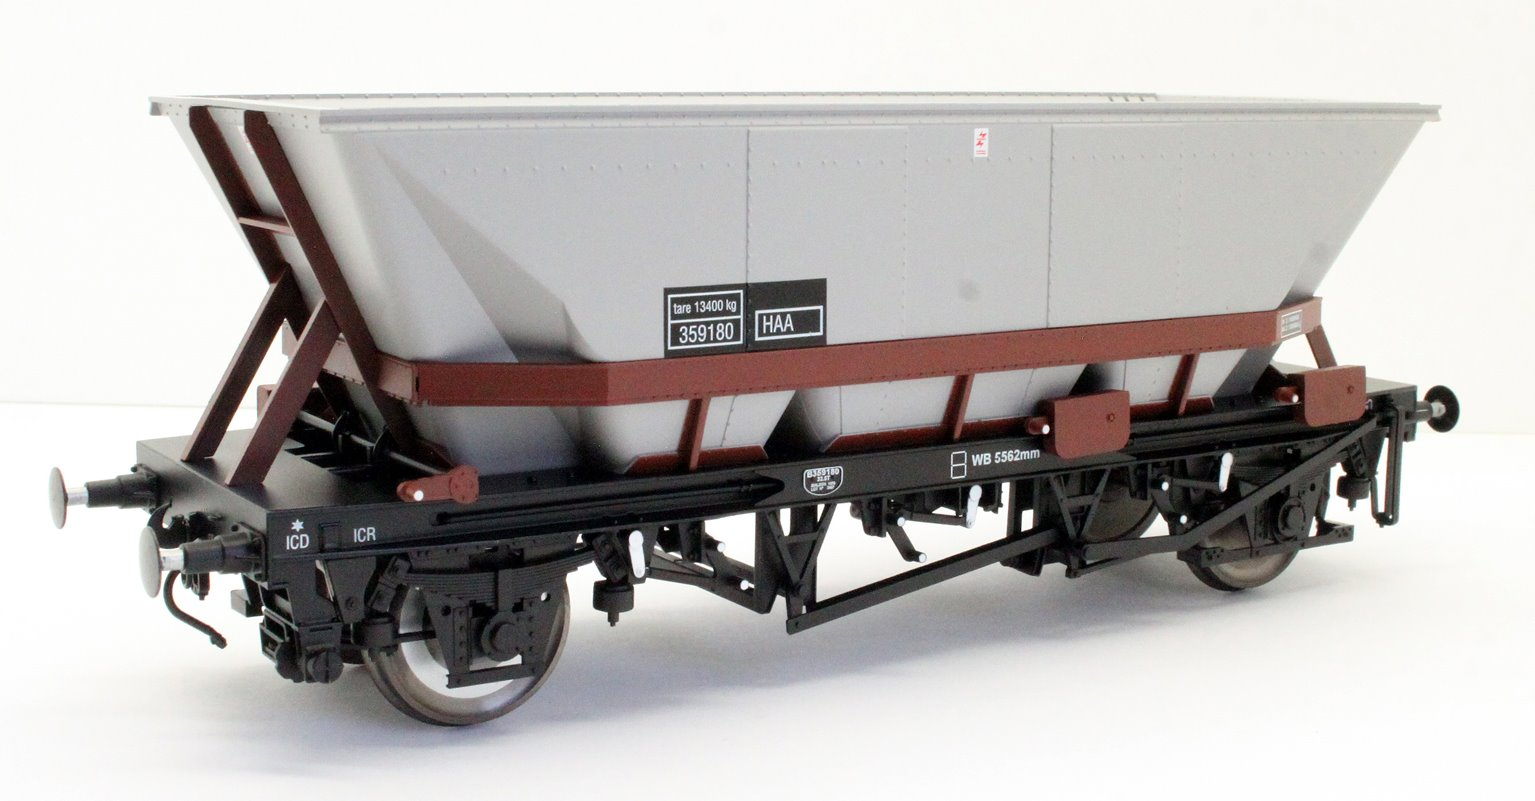 Dapol 7F-048-006 MGR HAA Coal Wagon (brown cradle) #359180